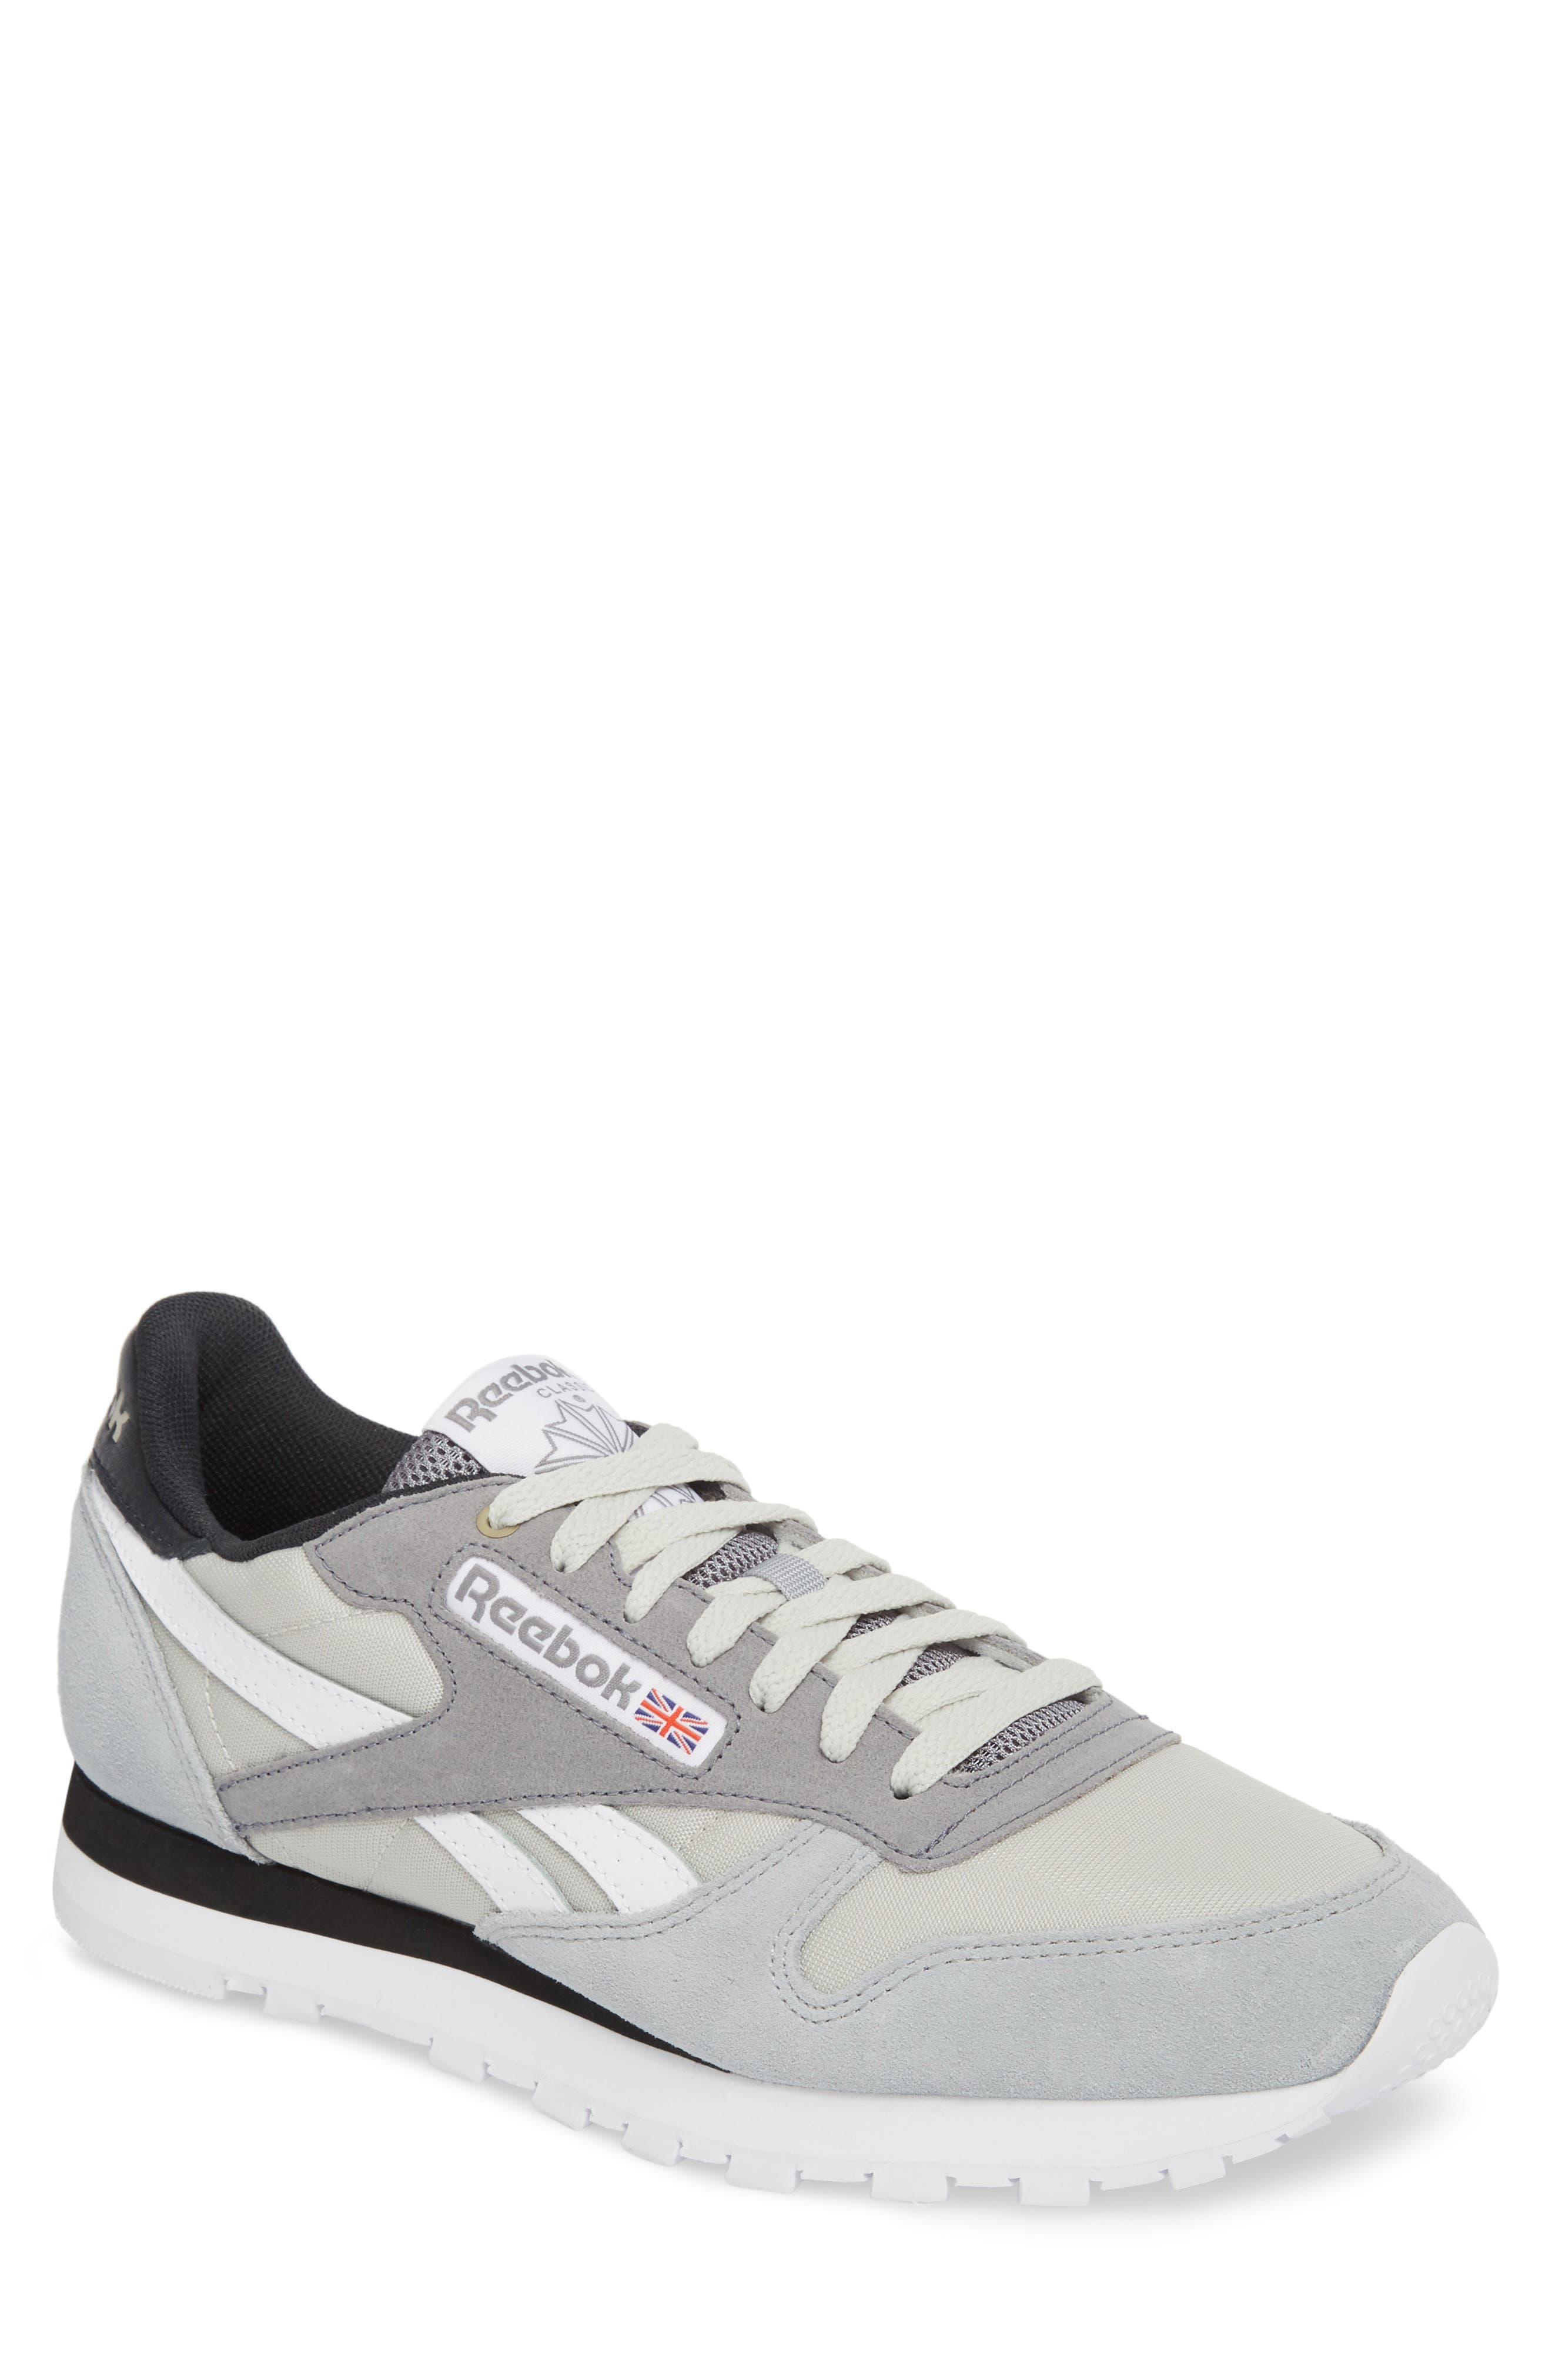 Classic Leather MCCS Sneaker,                         Main,                         color, 020